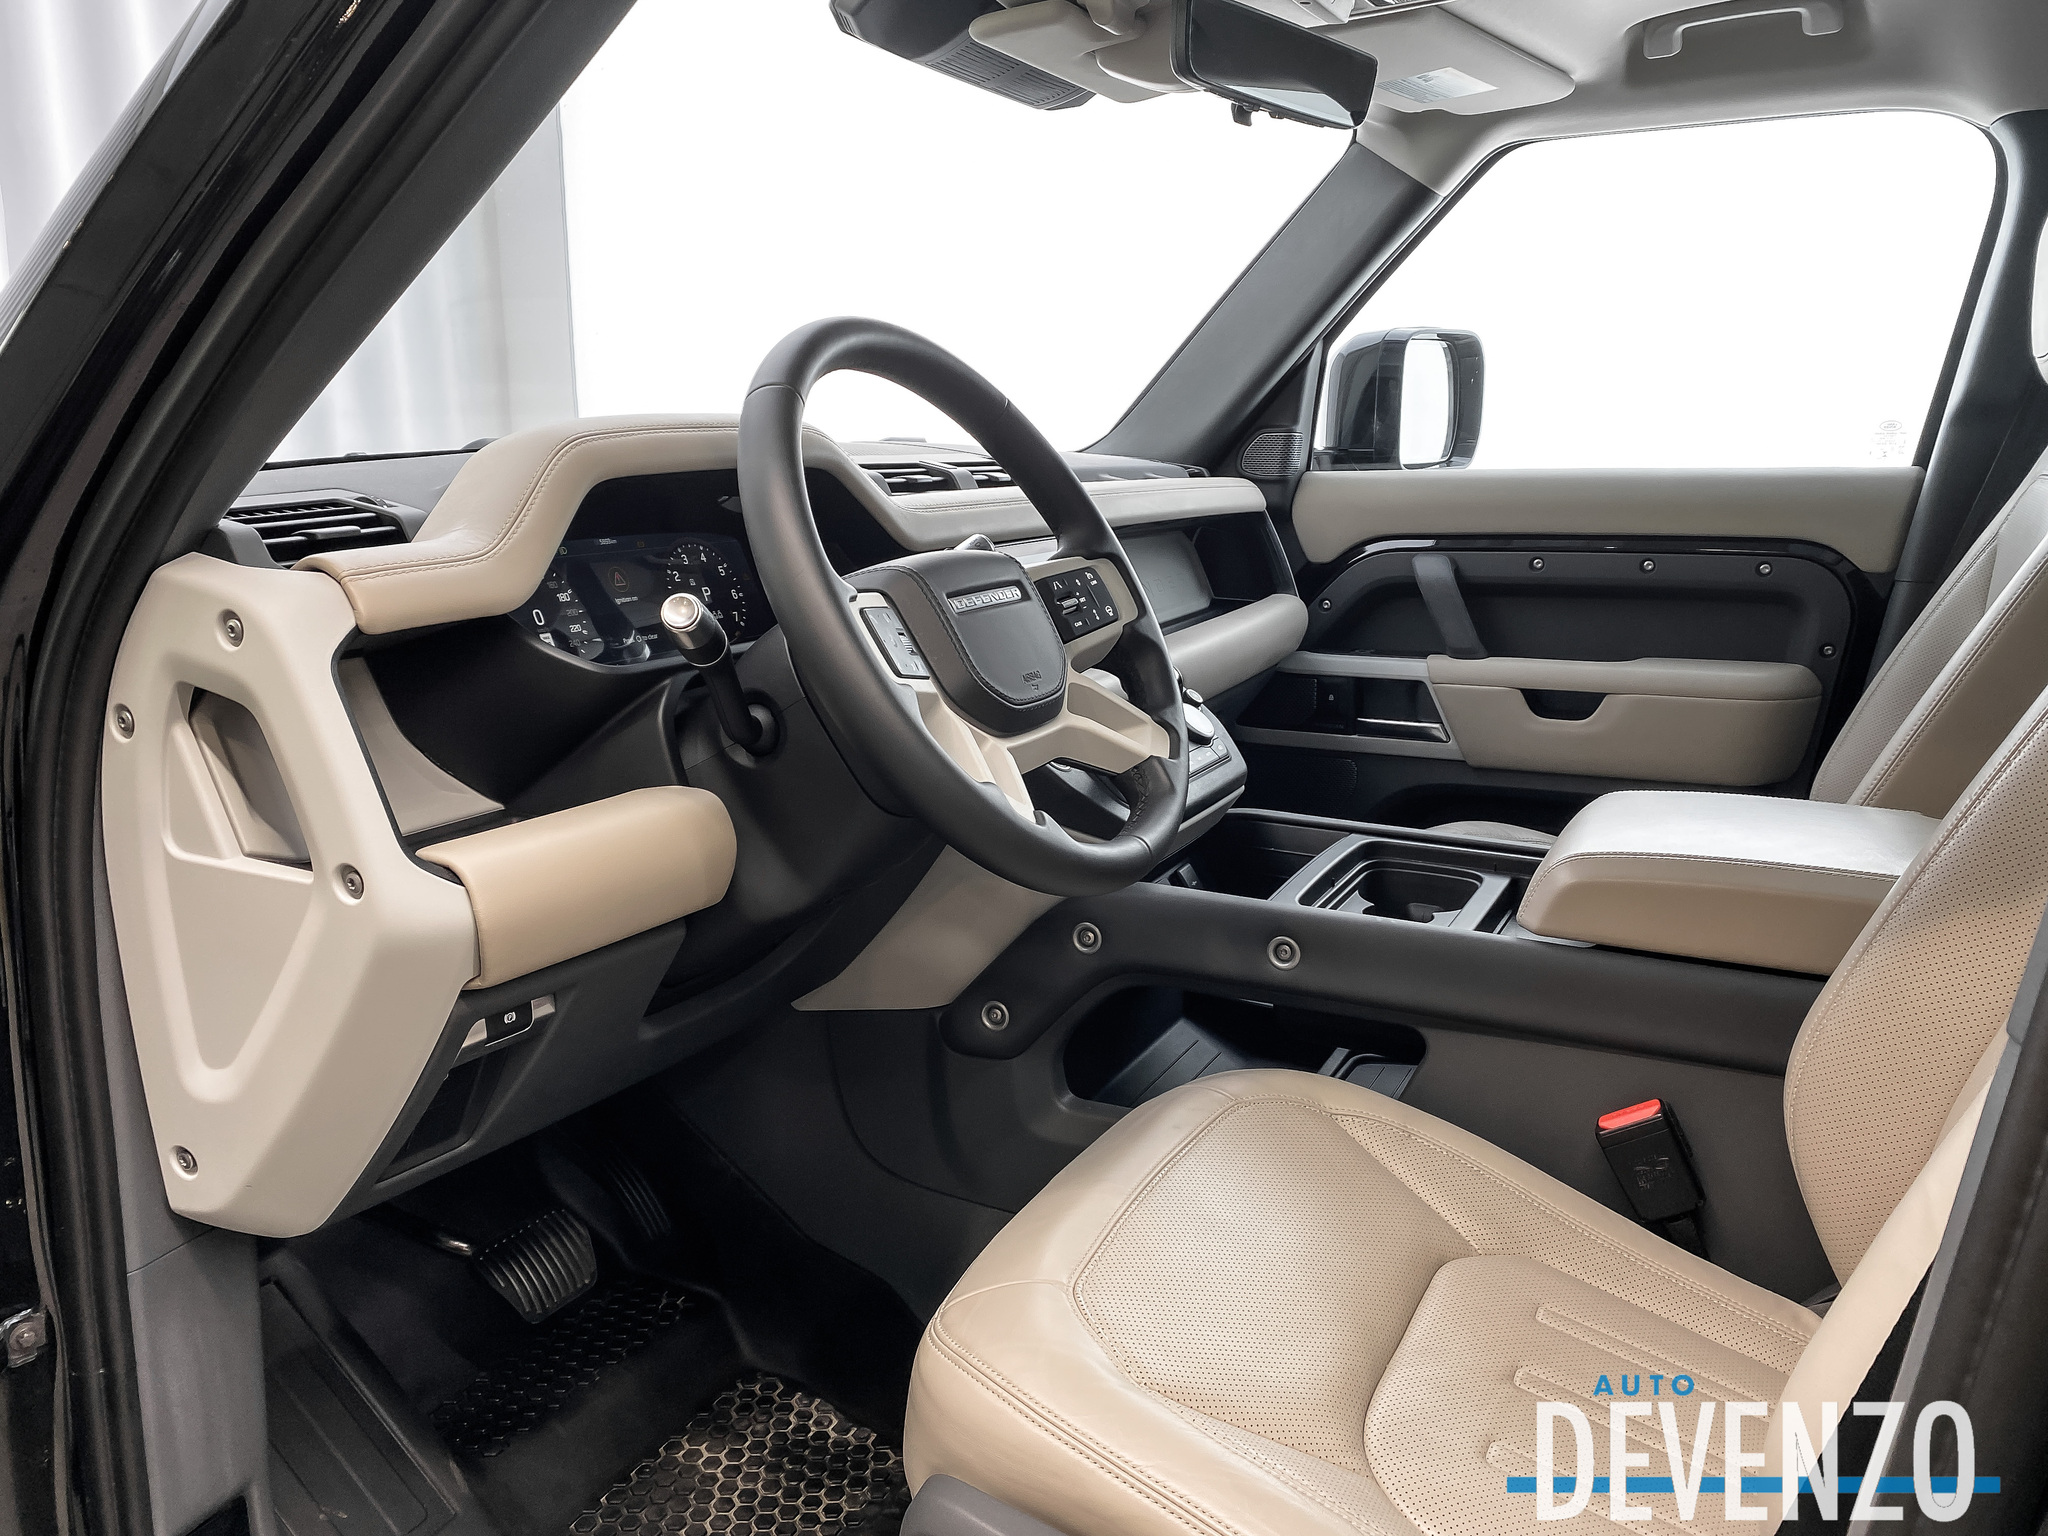 2020 Land Rover Defender 110 HSE AWD complet